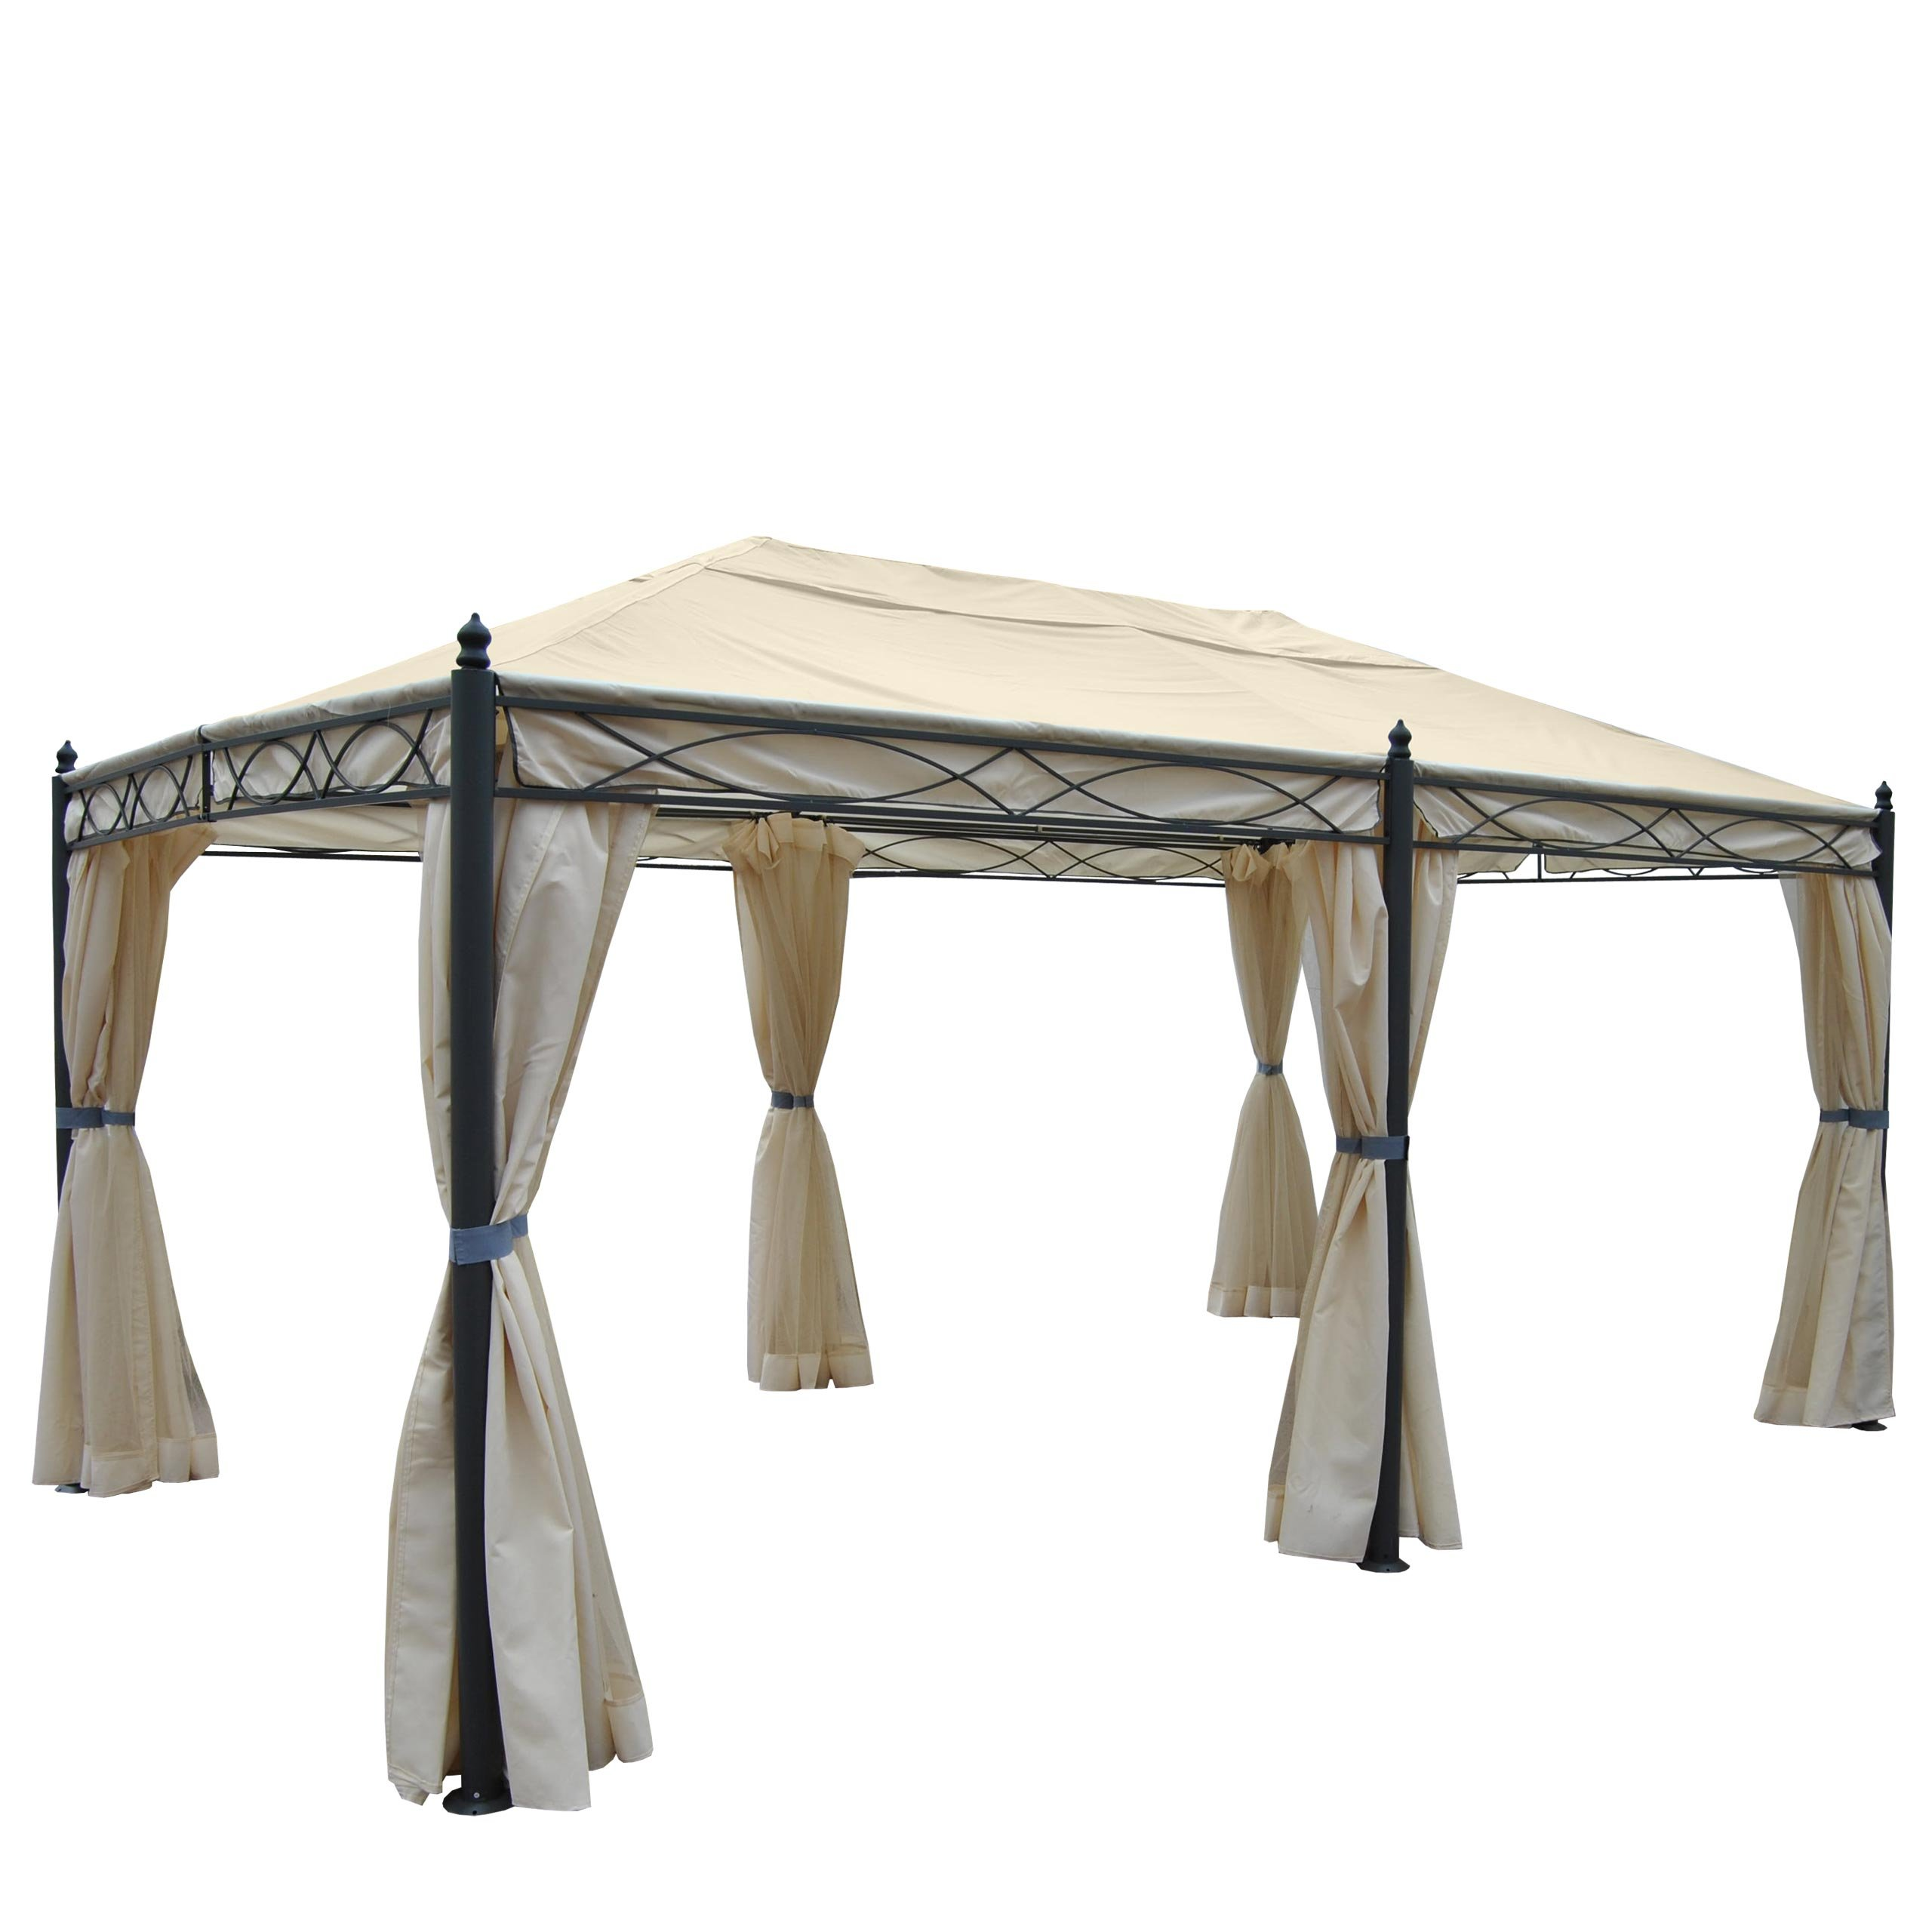 Pergola Cadiz, carpa, estructura estable de 7 cm 5 x 3 m ~ color crema con aspecto pared + Mosquitera: Amazon.es: Jardín